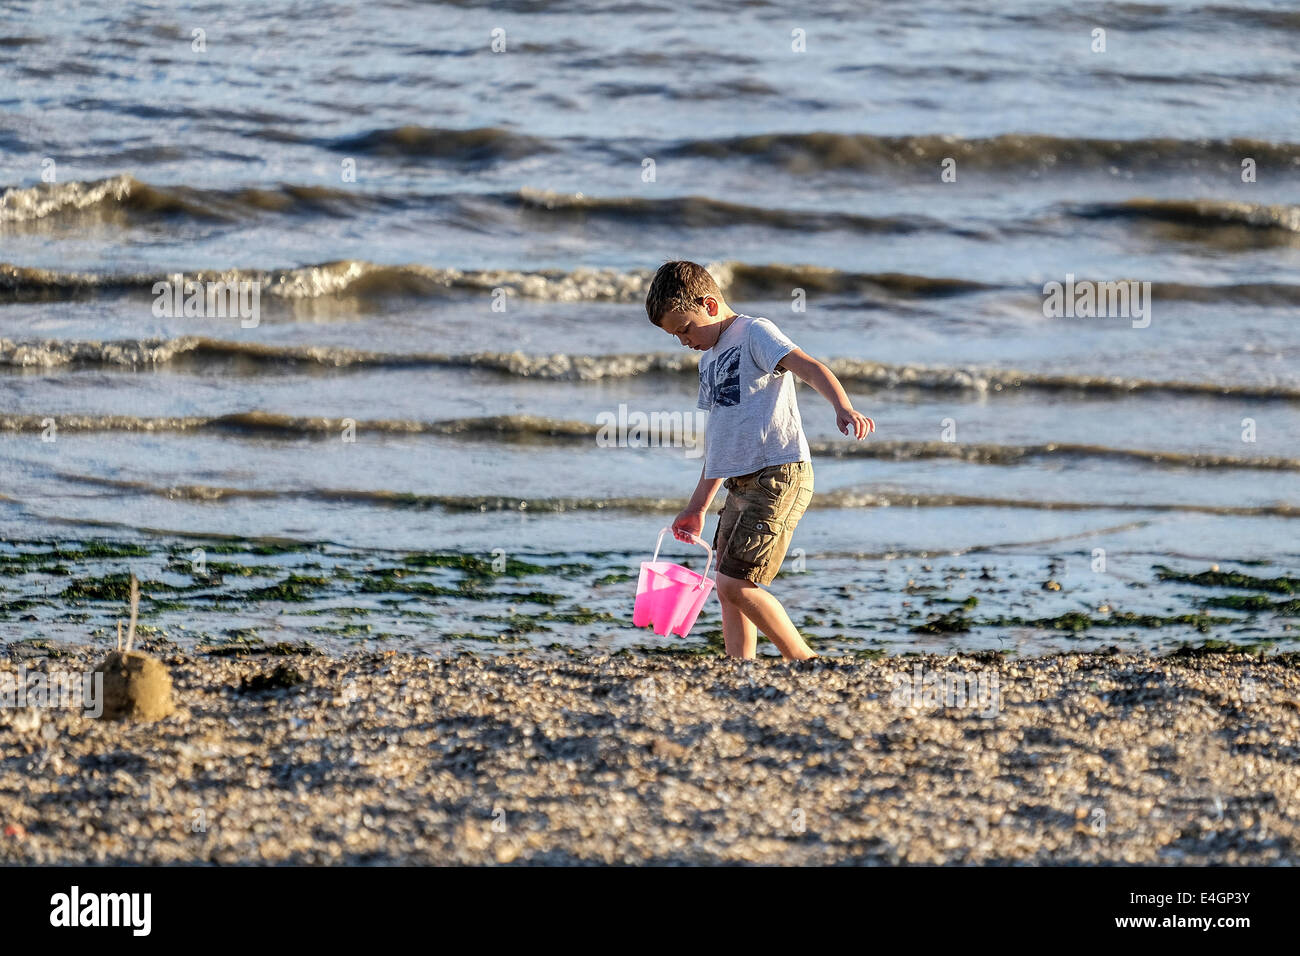 A young boy carrying his bucket across a beach. - Stock Image